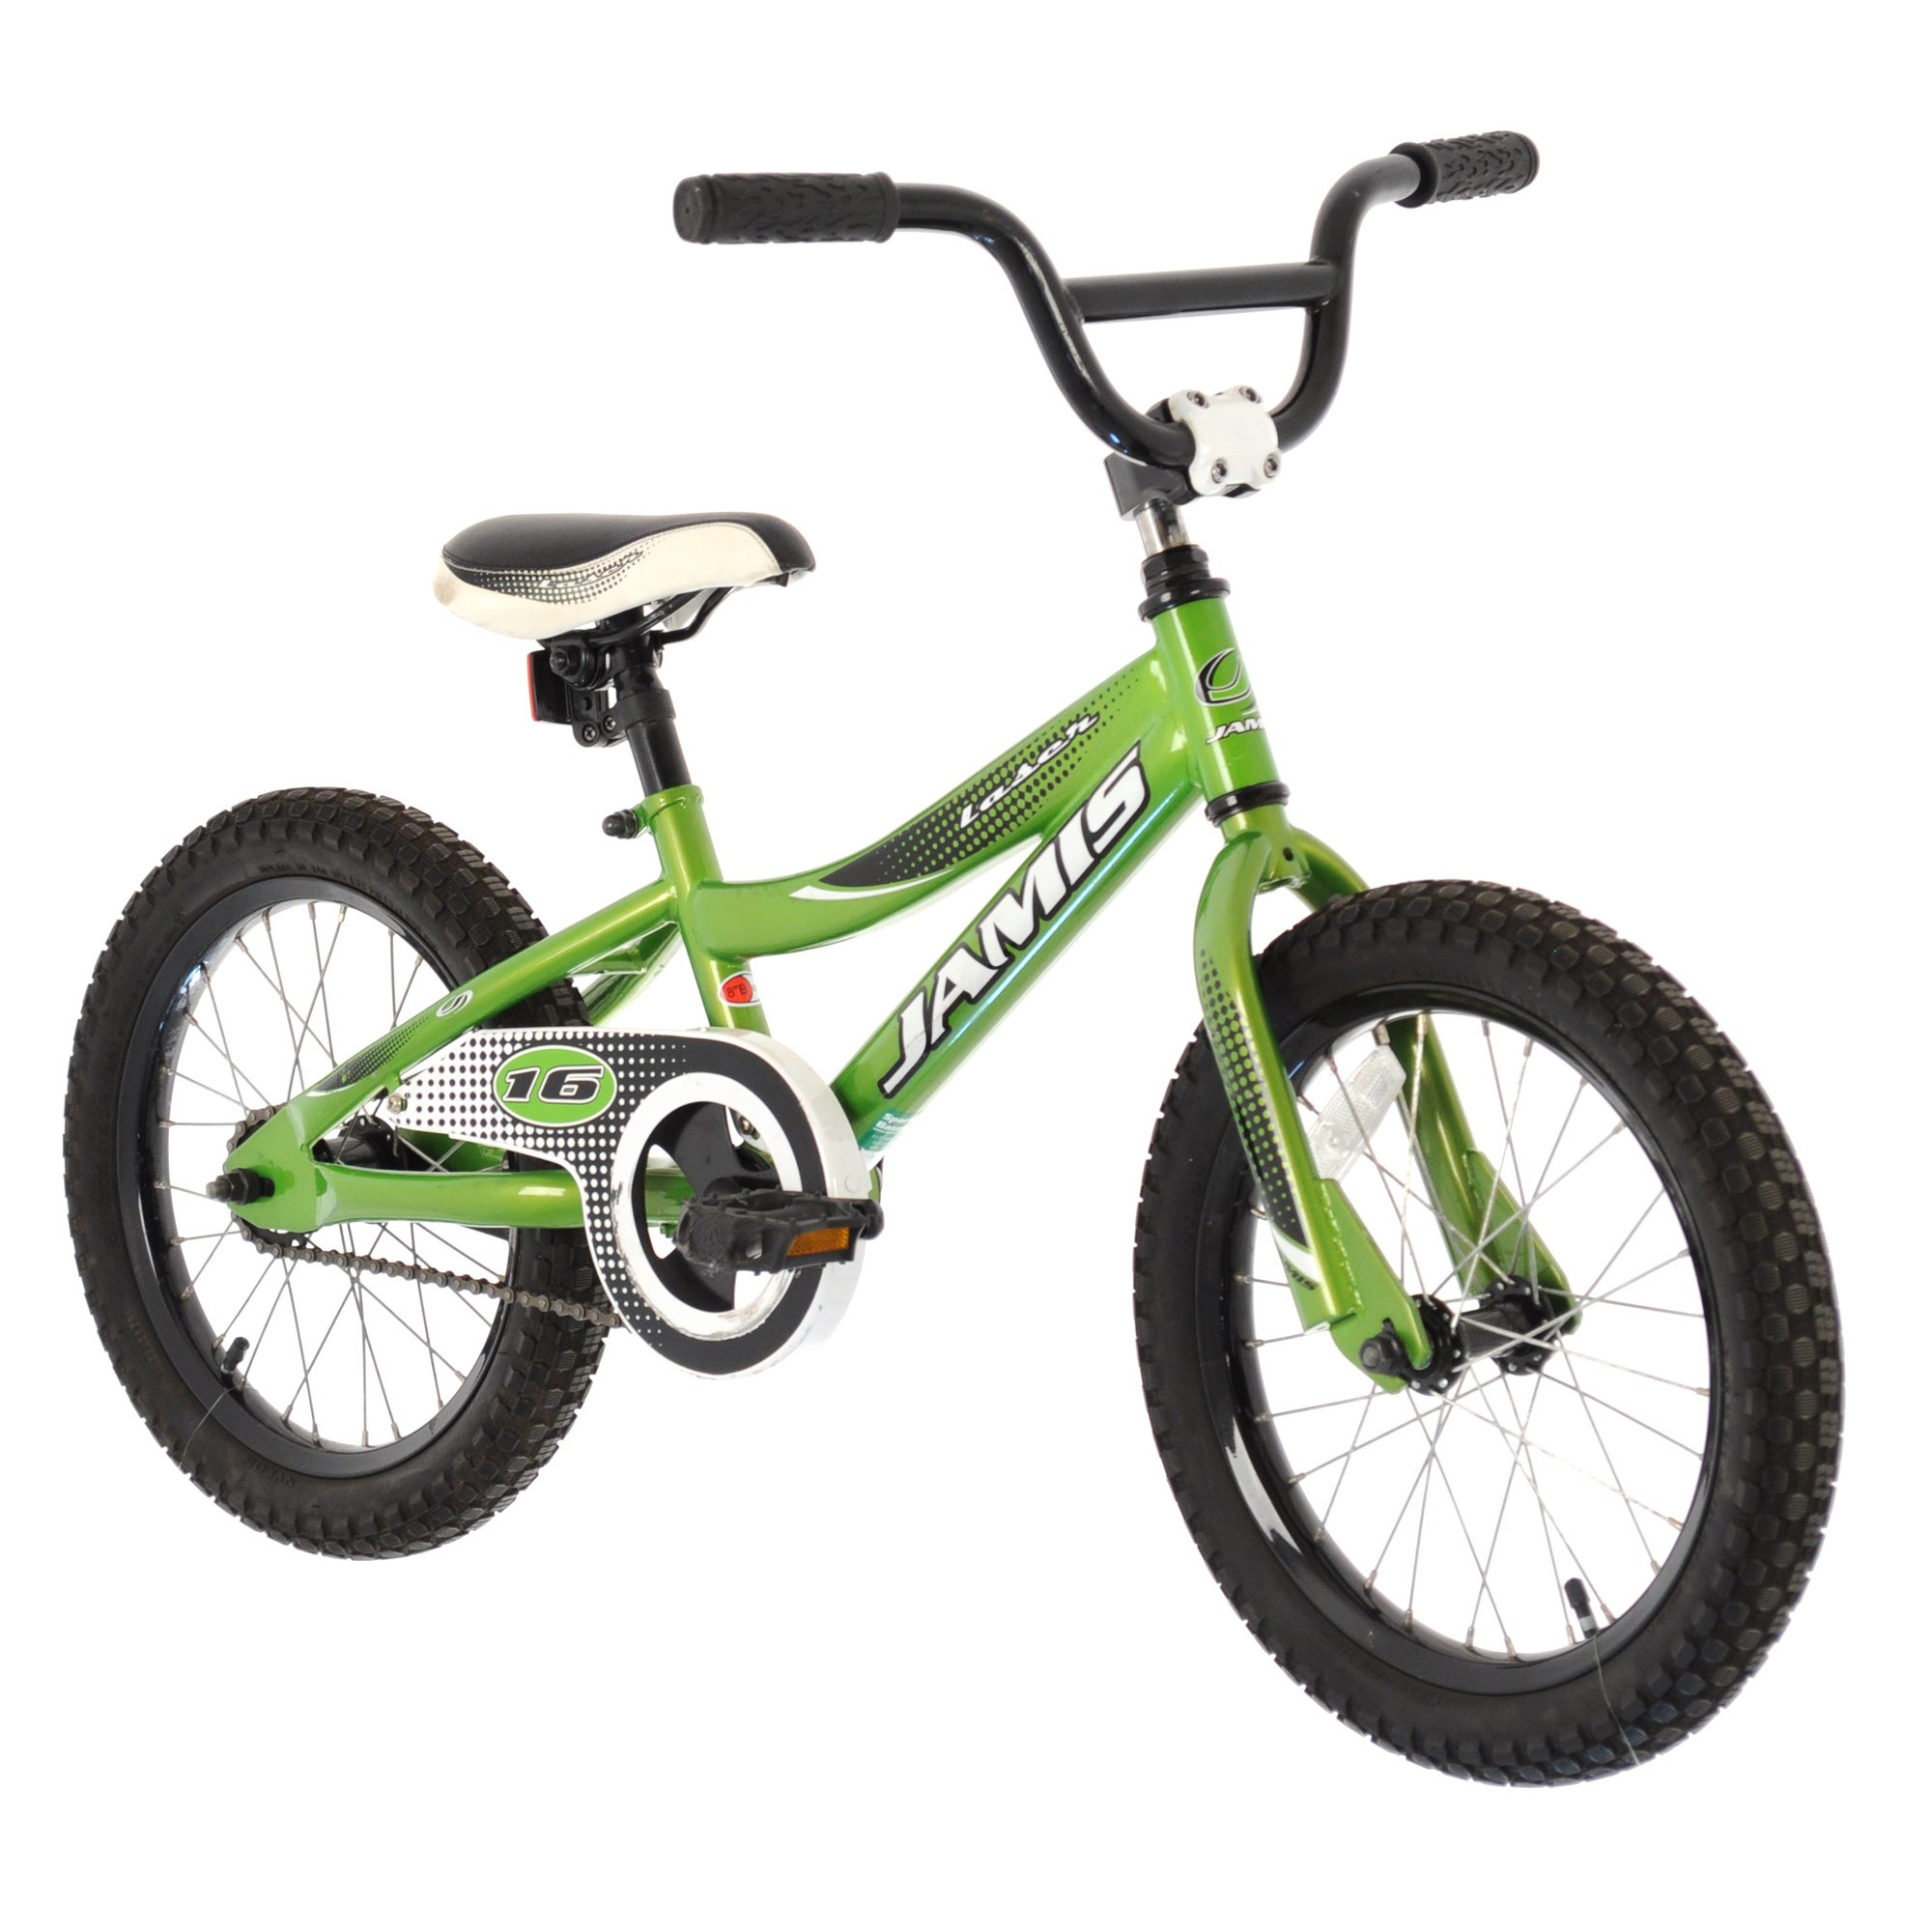 2015 Jamis Laser 16 Boys Kids Bike Green Ebay